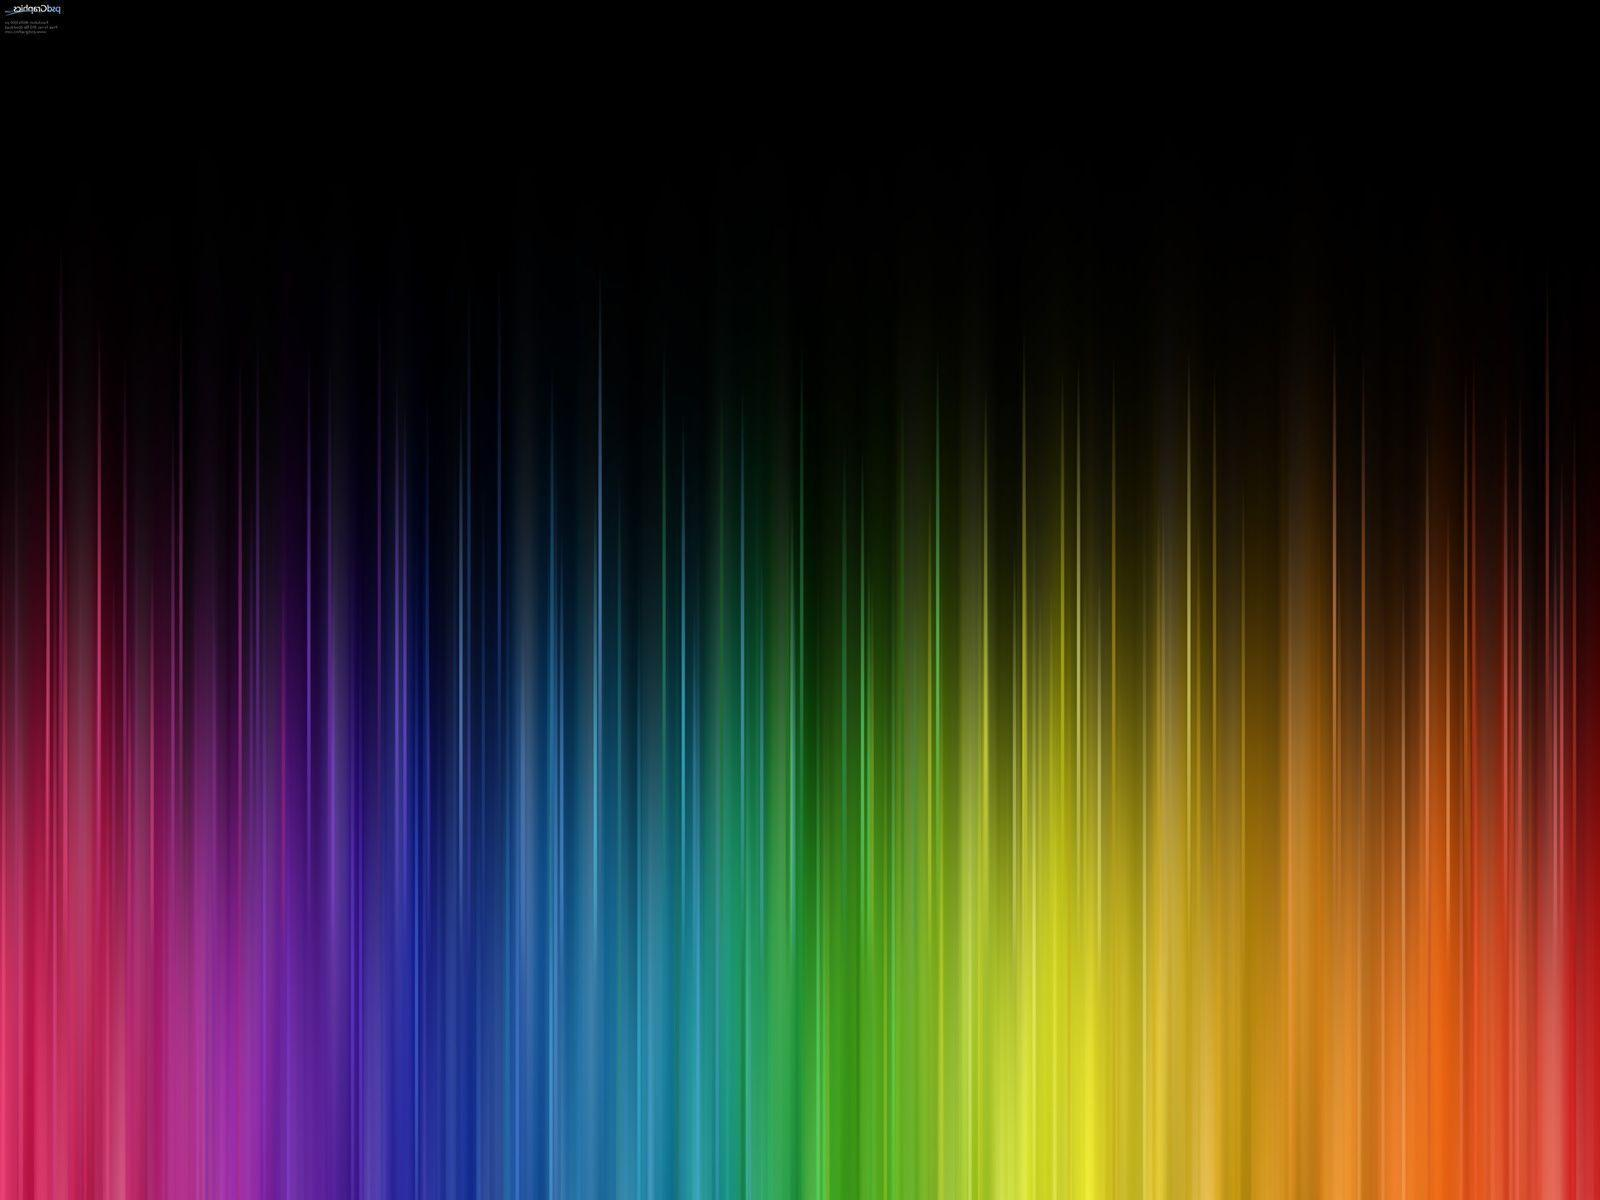 Cool Designs For Backgrounds 1600x1200